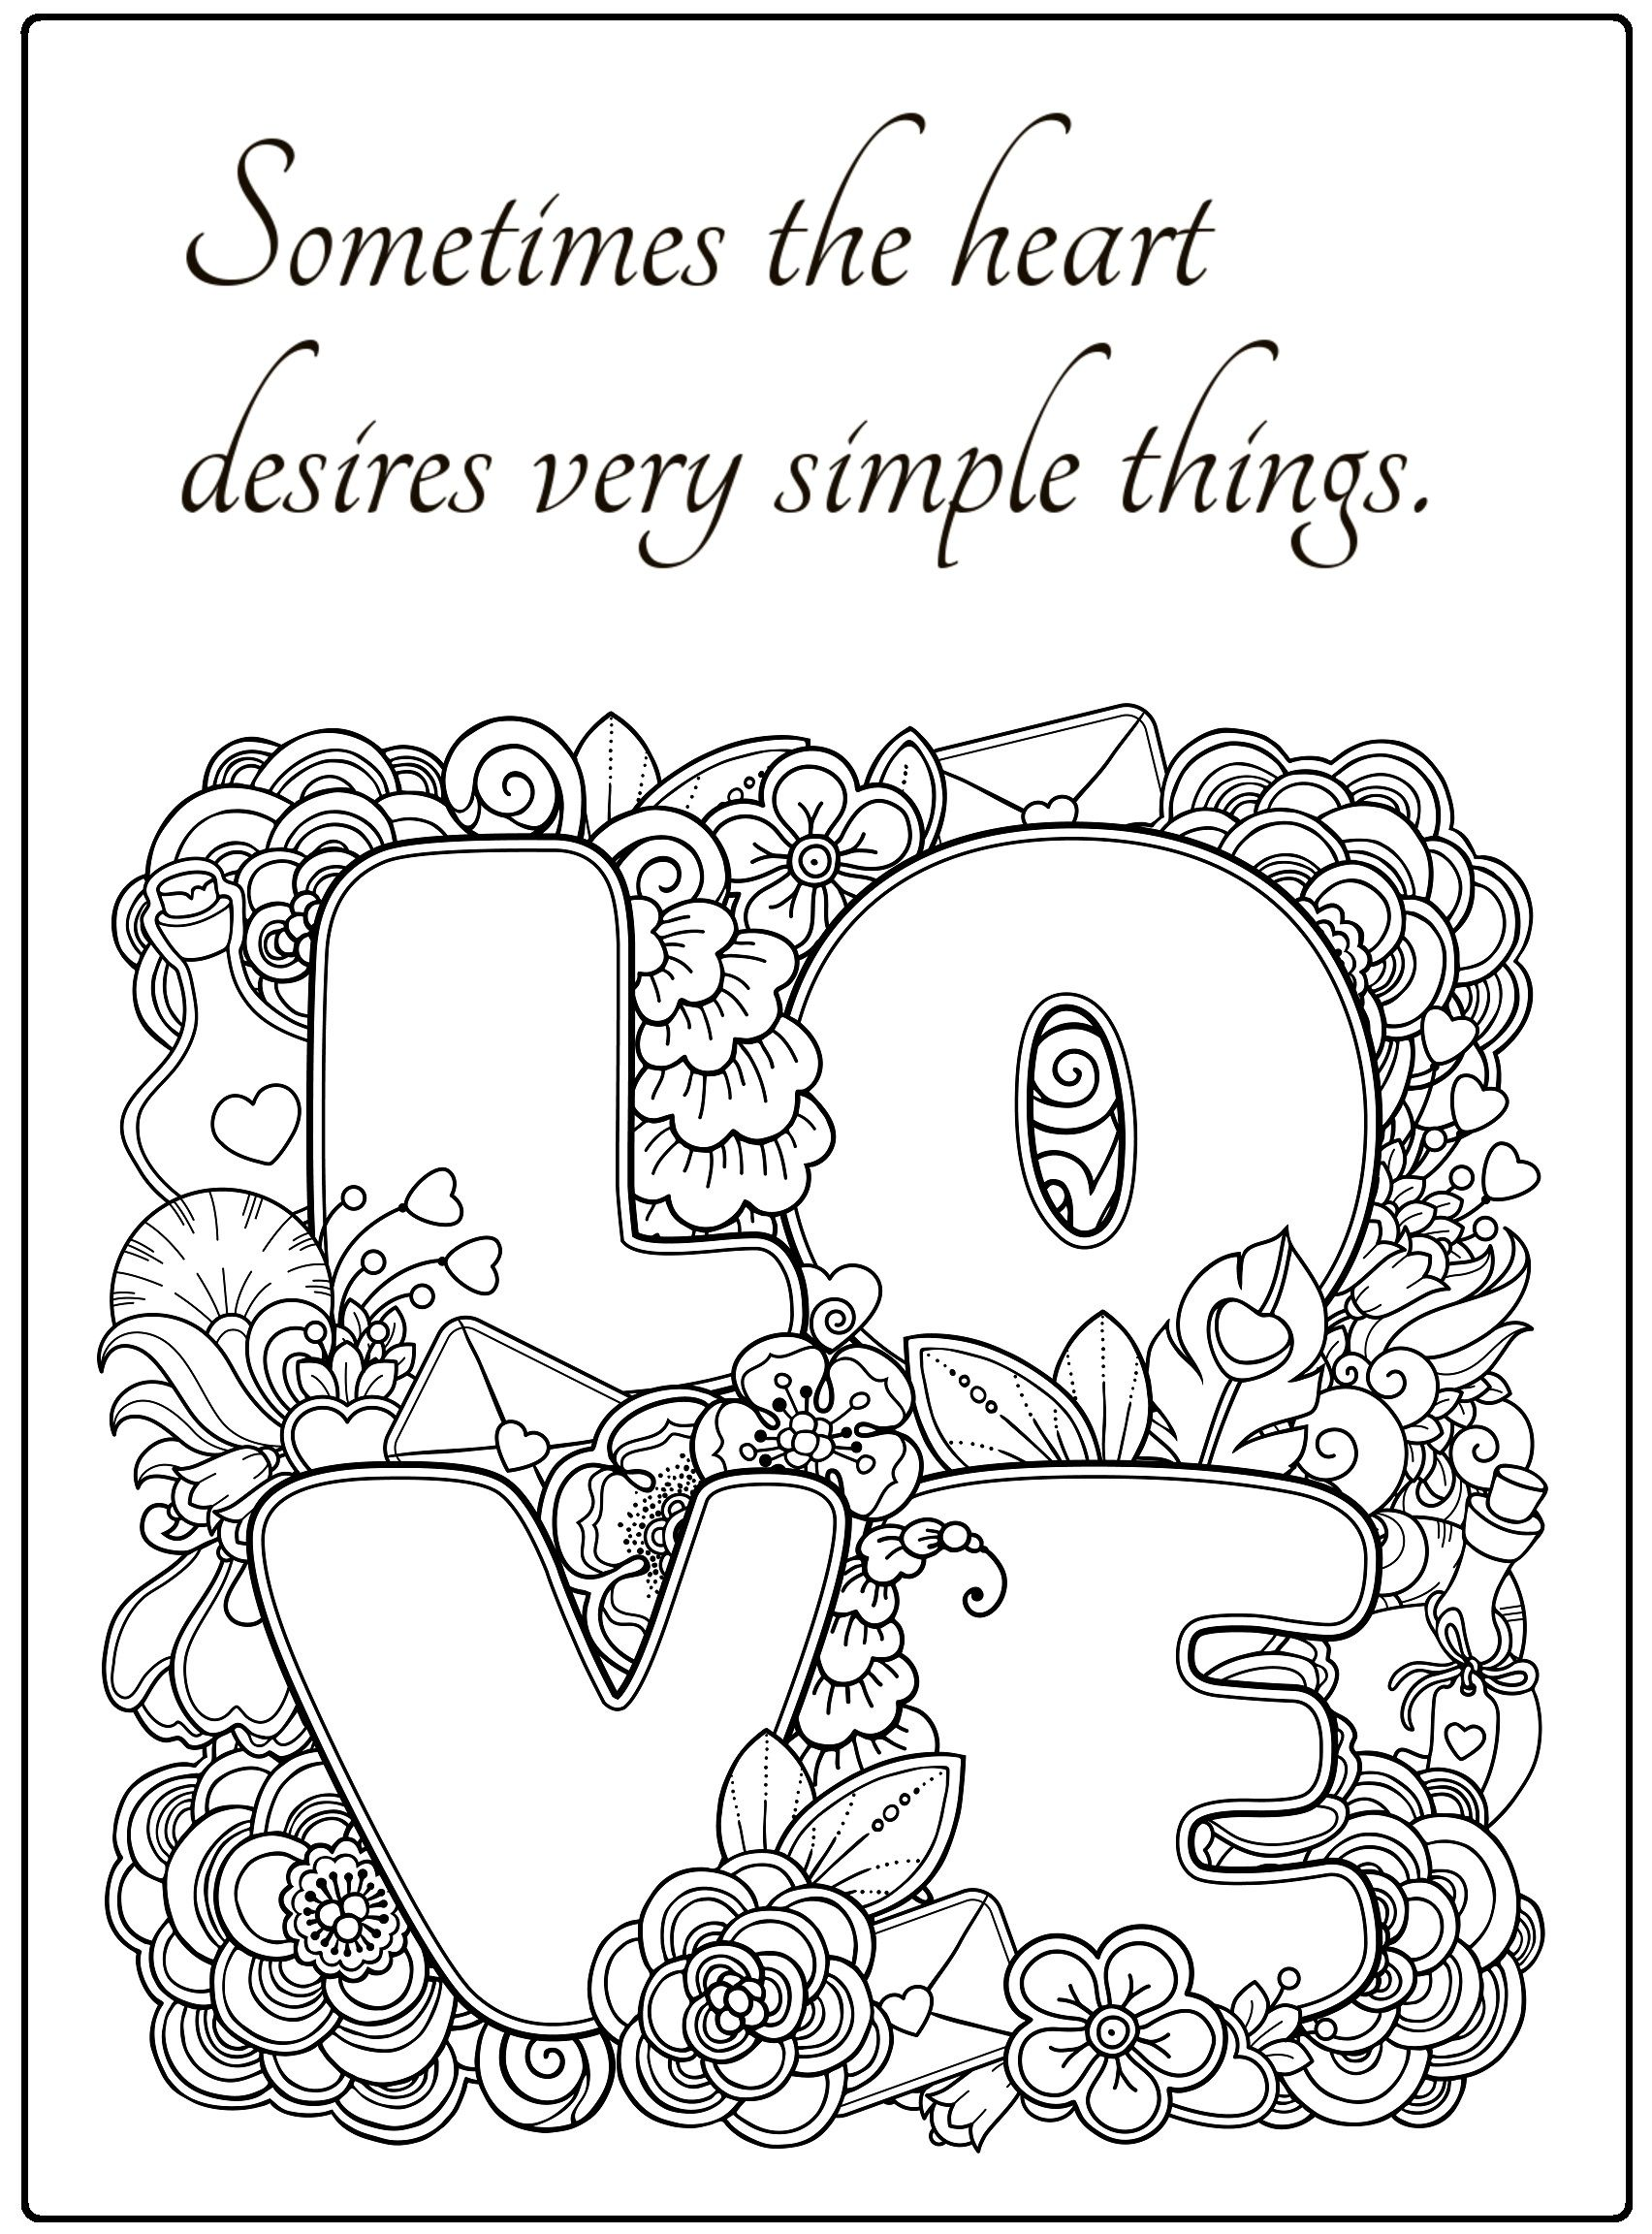 Army Wife Girlfriends Coloring Pages Coloring Books Love Notes For Husband Coloring Pages